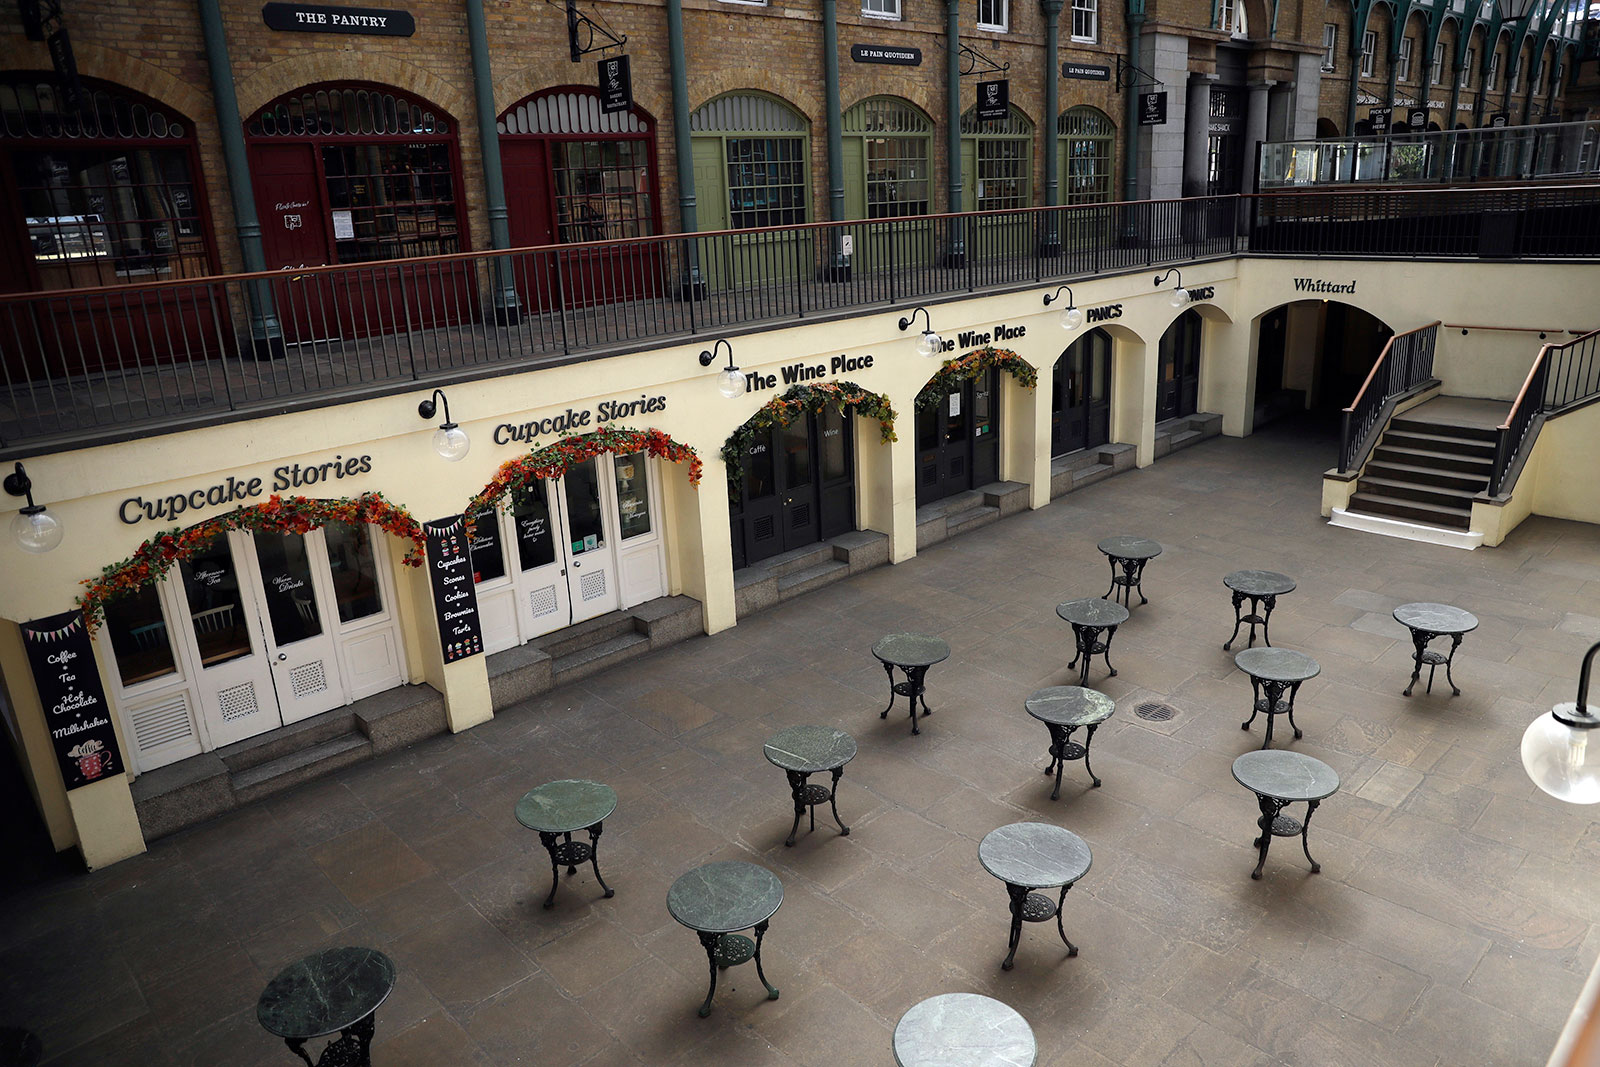 Tables stand empty, as restaurants and bars are closed due to the lockdown to try to stop the spread of coronavirus, in the south hall of Covent Garden, central London on April 20.